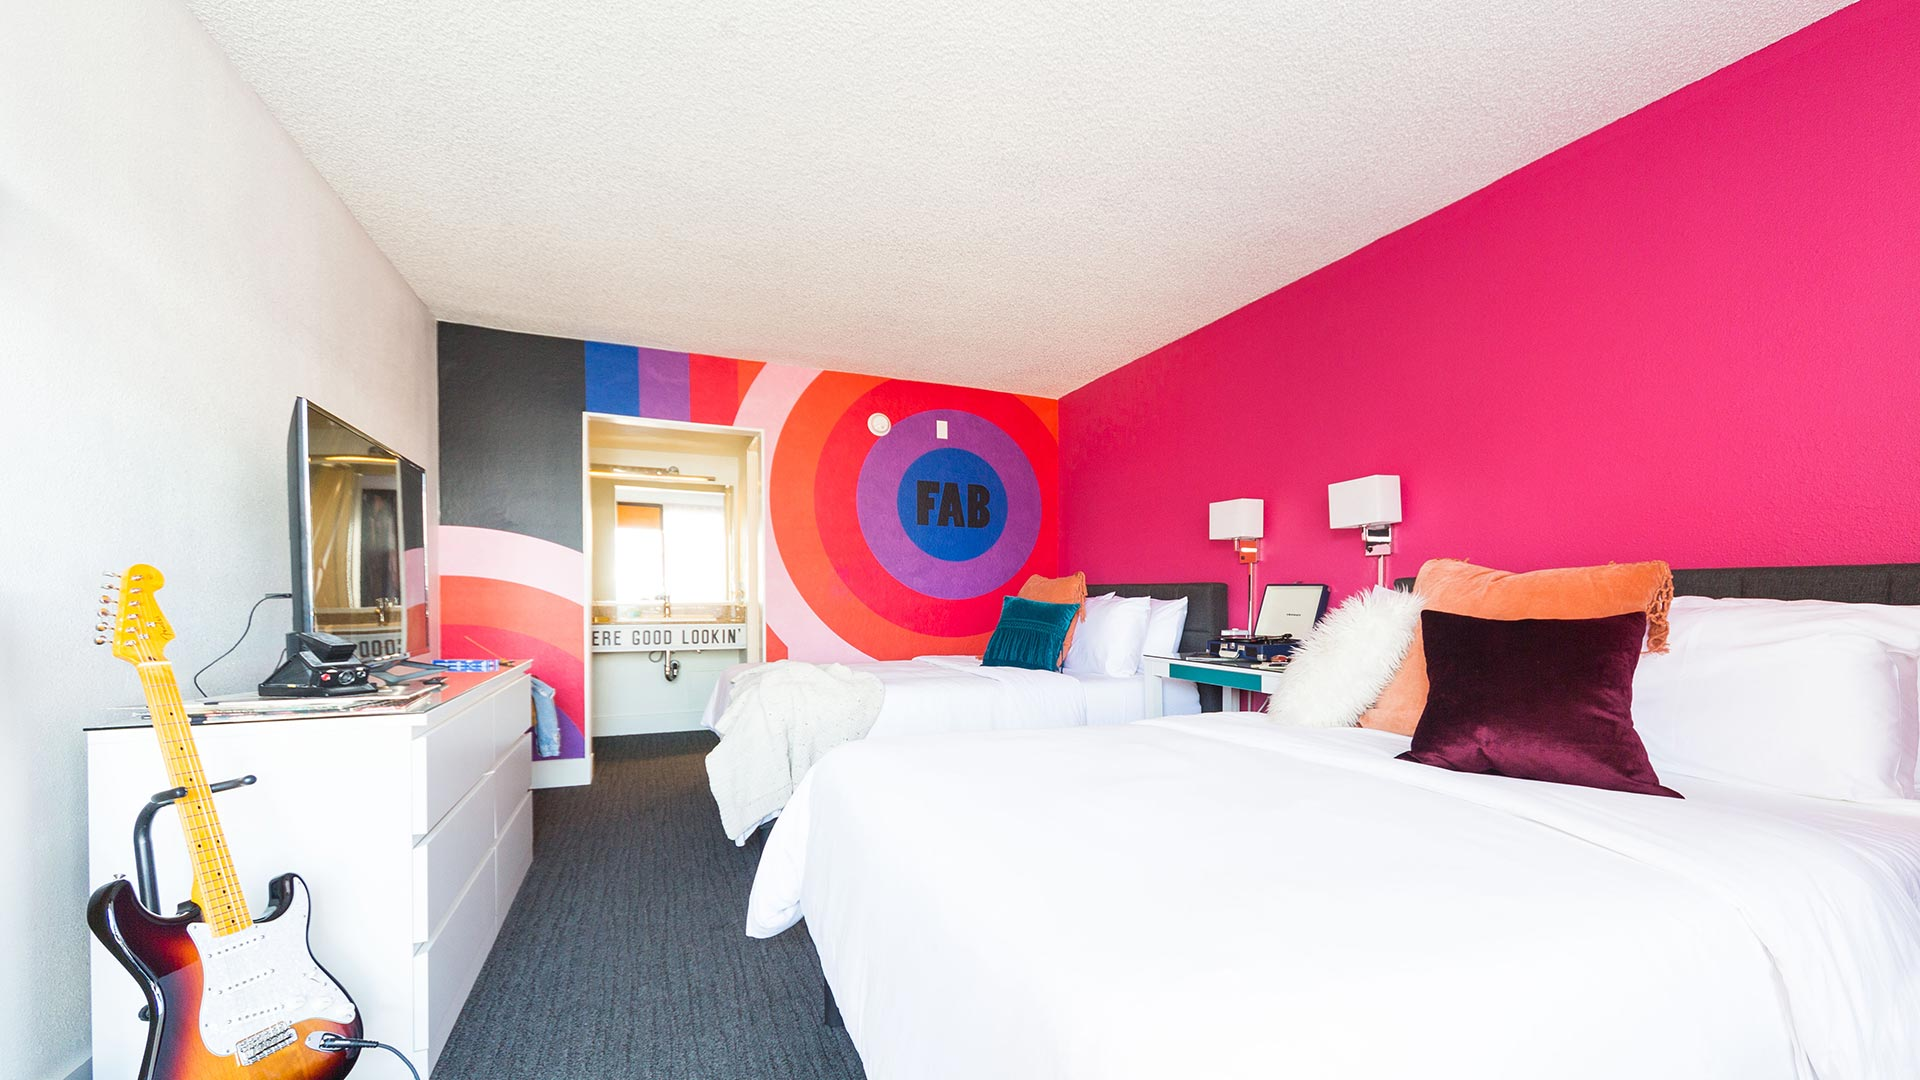 Rambler: view of two queen beds with RAD wall graphic in view